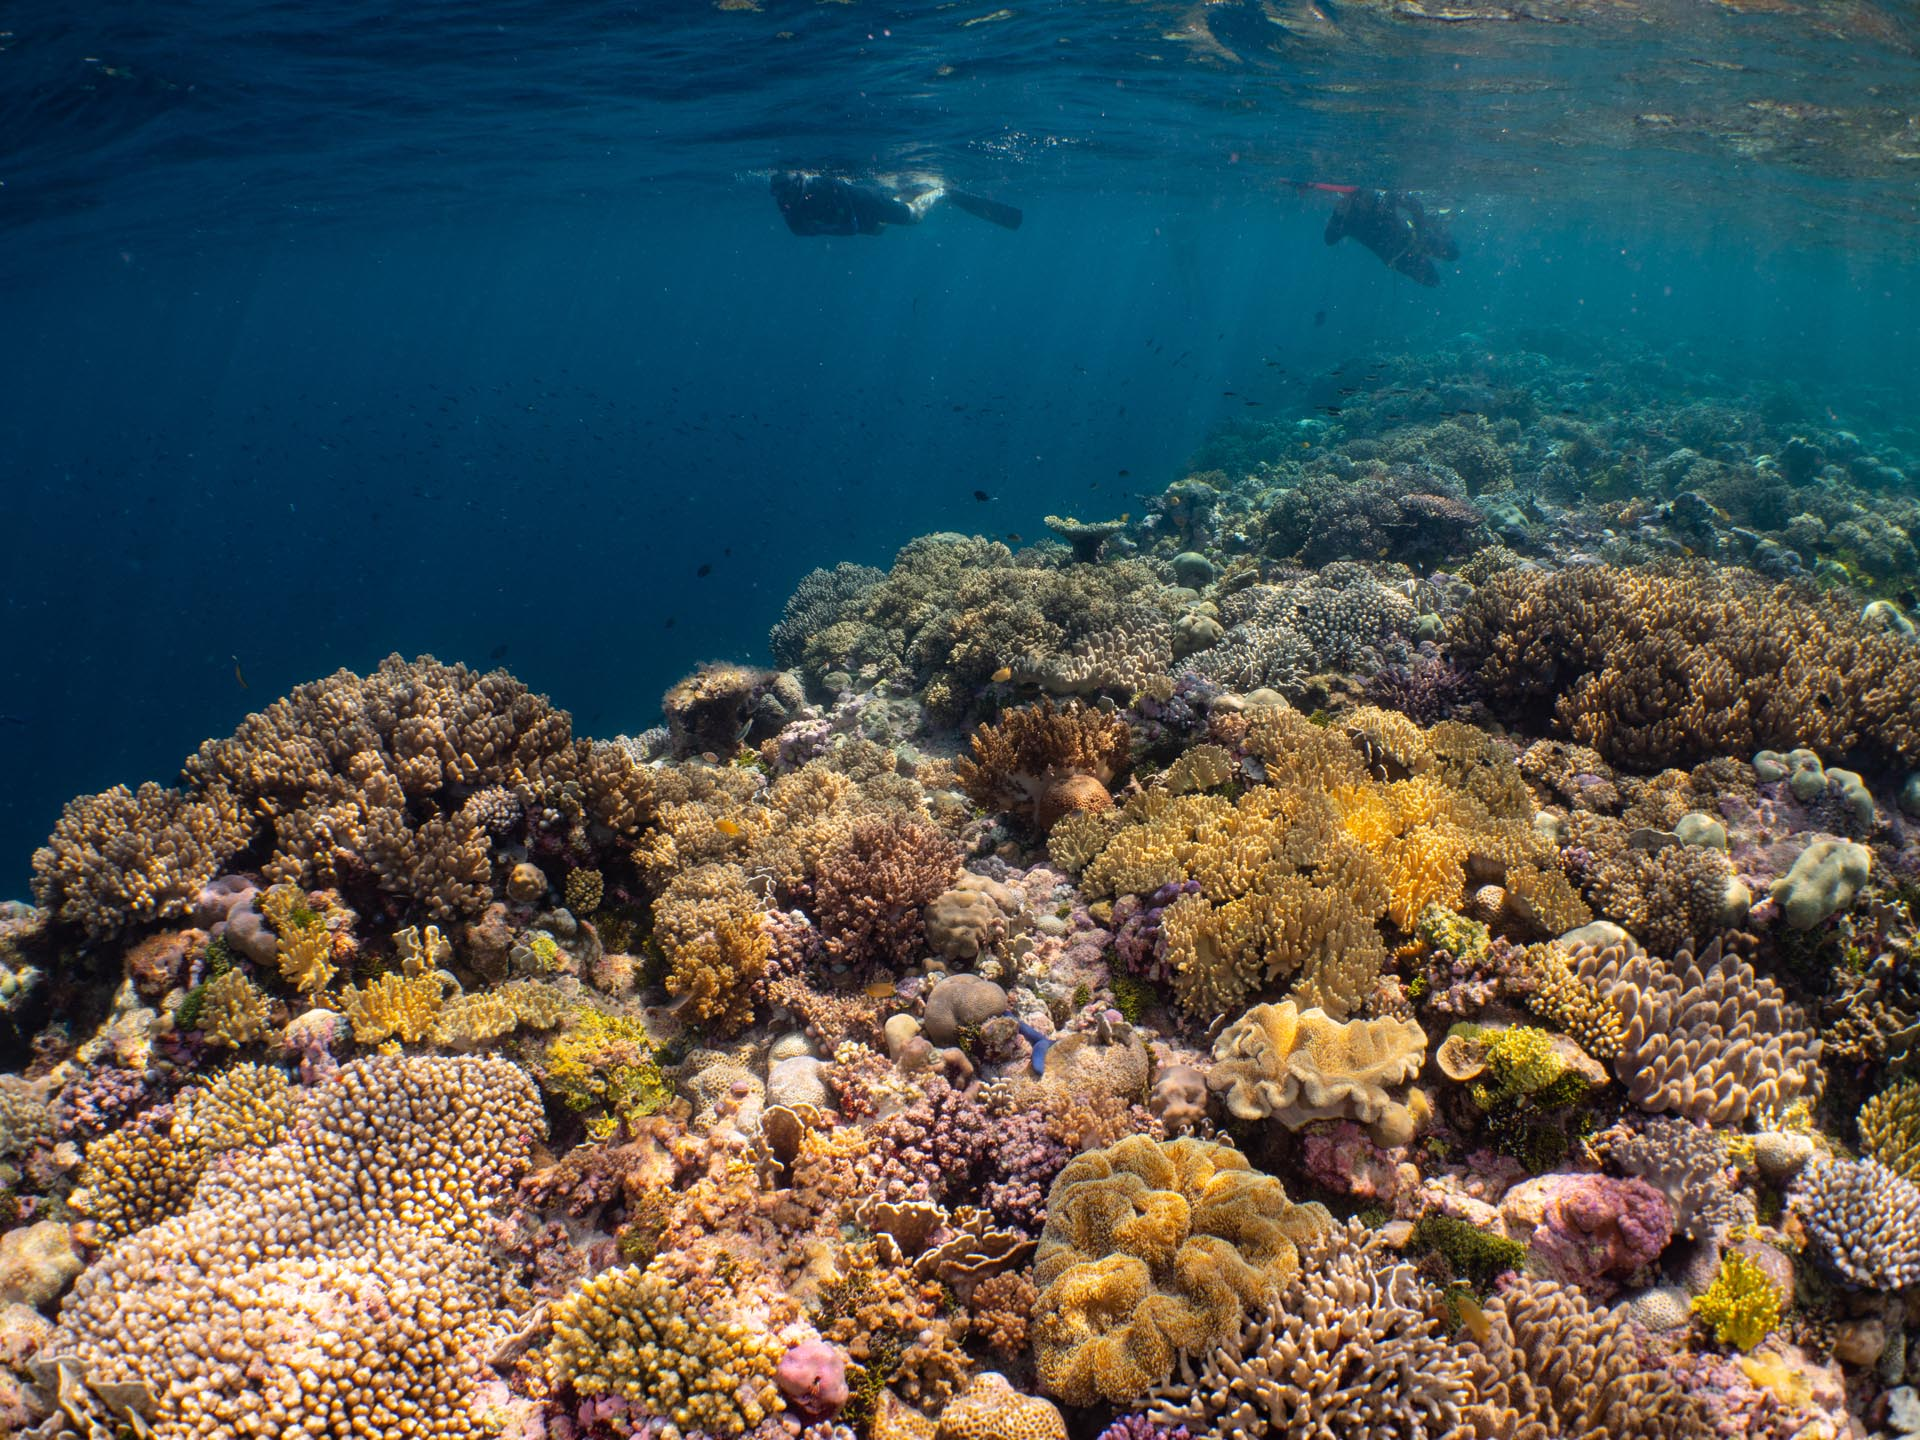 Vast coral reef with snorkelers above